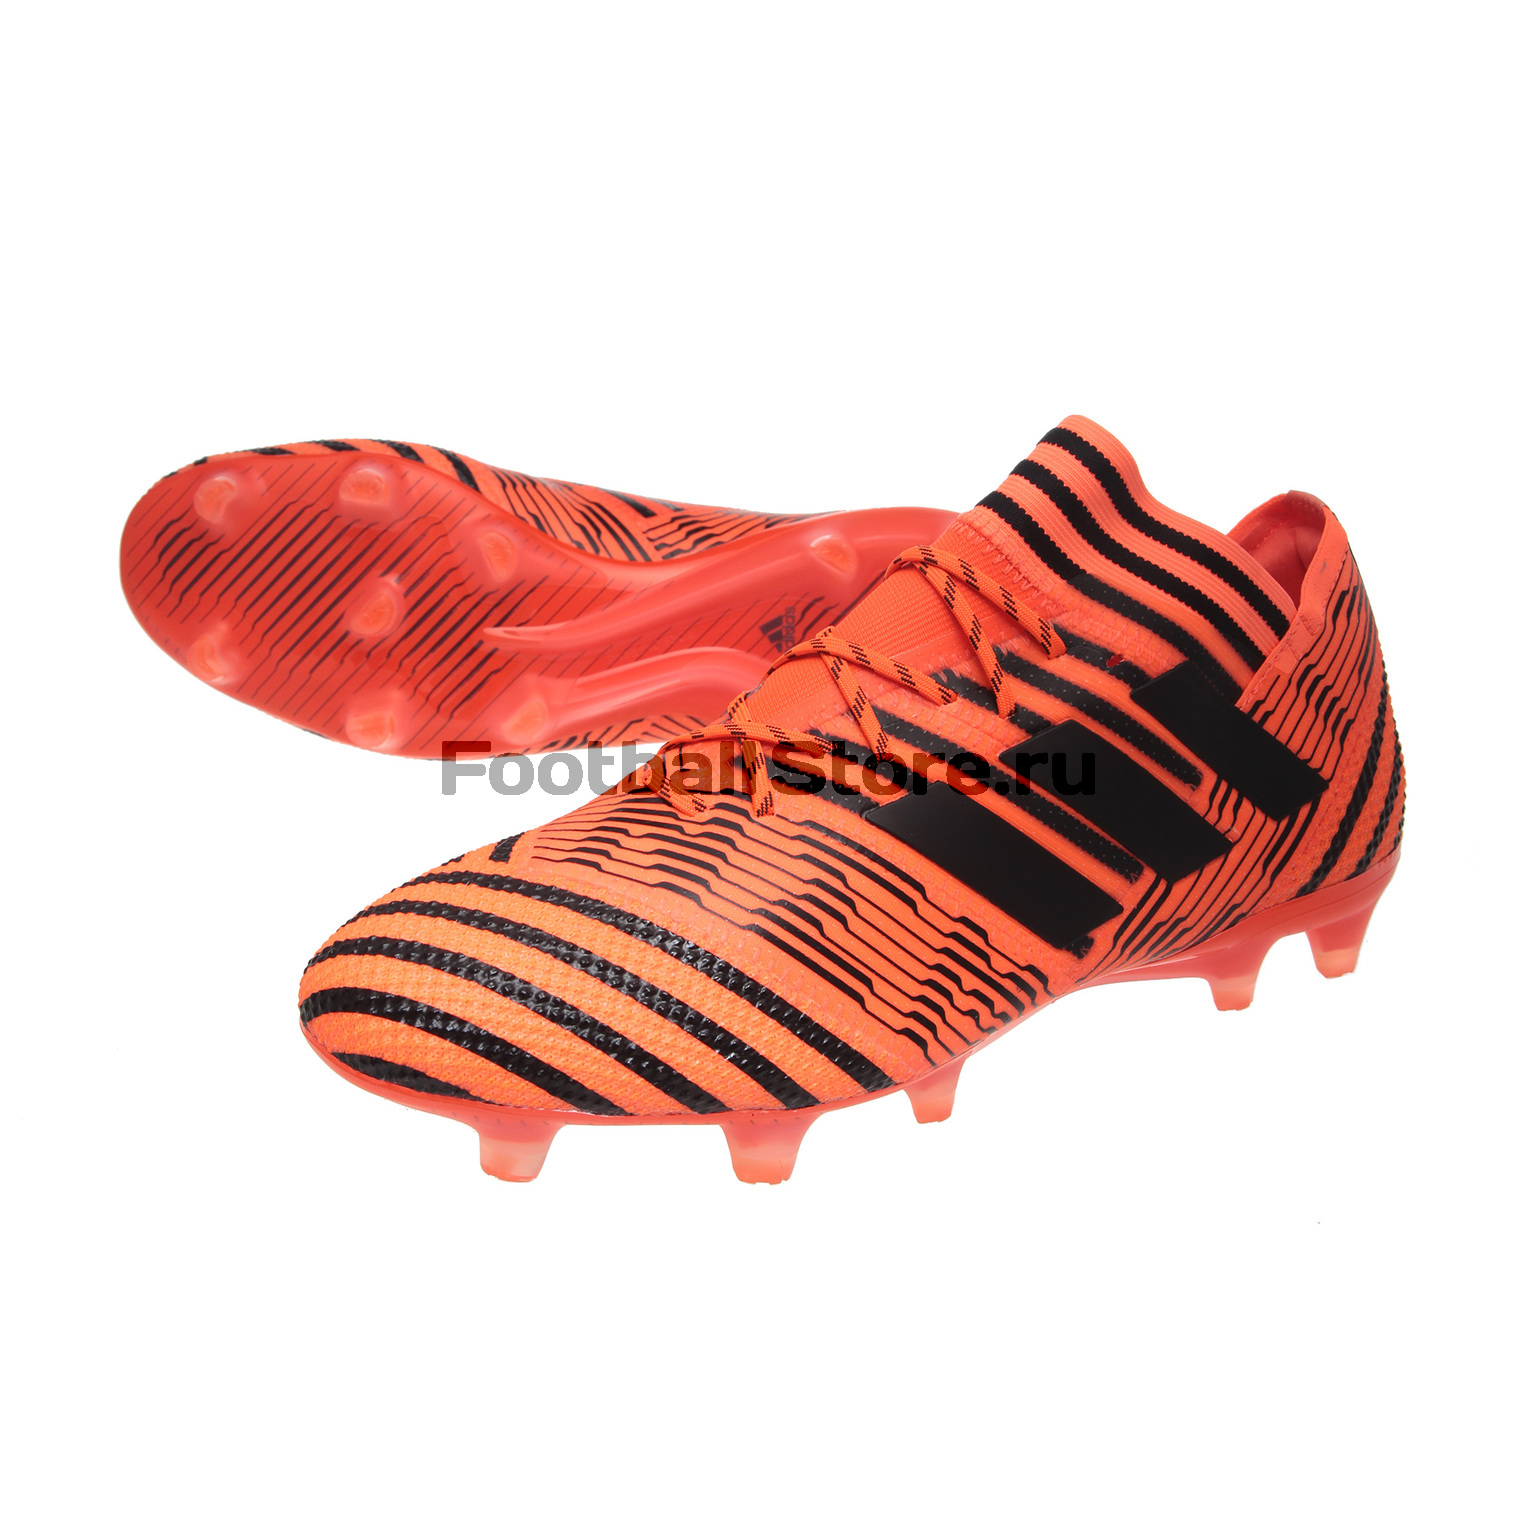 Игровые бутсы Adidas Бутсы Adidas Nemeziz 17.1 FG BB6079 adidas denim superskin